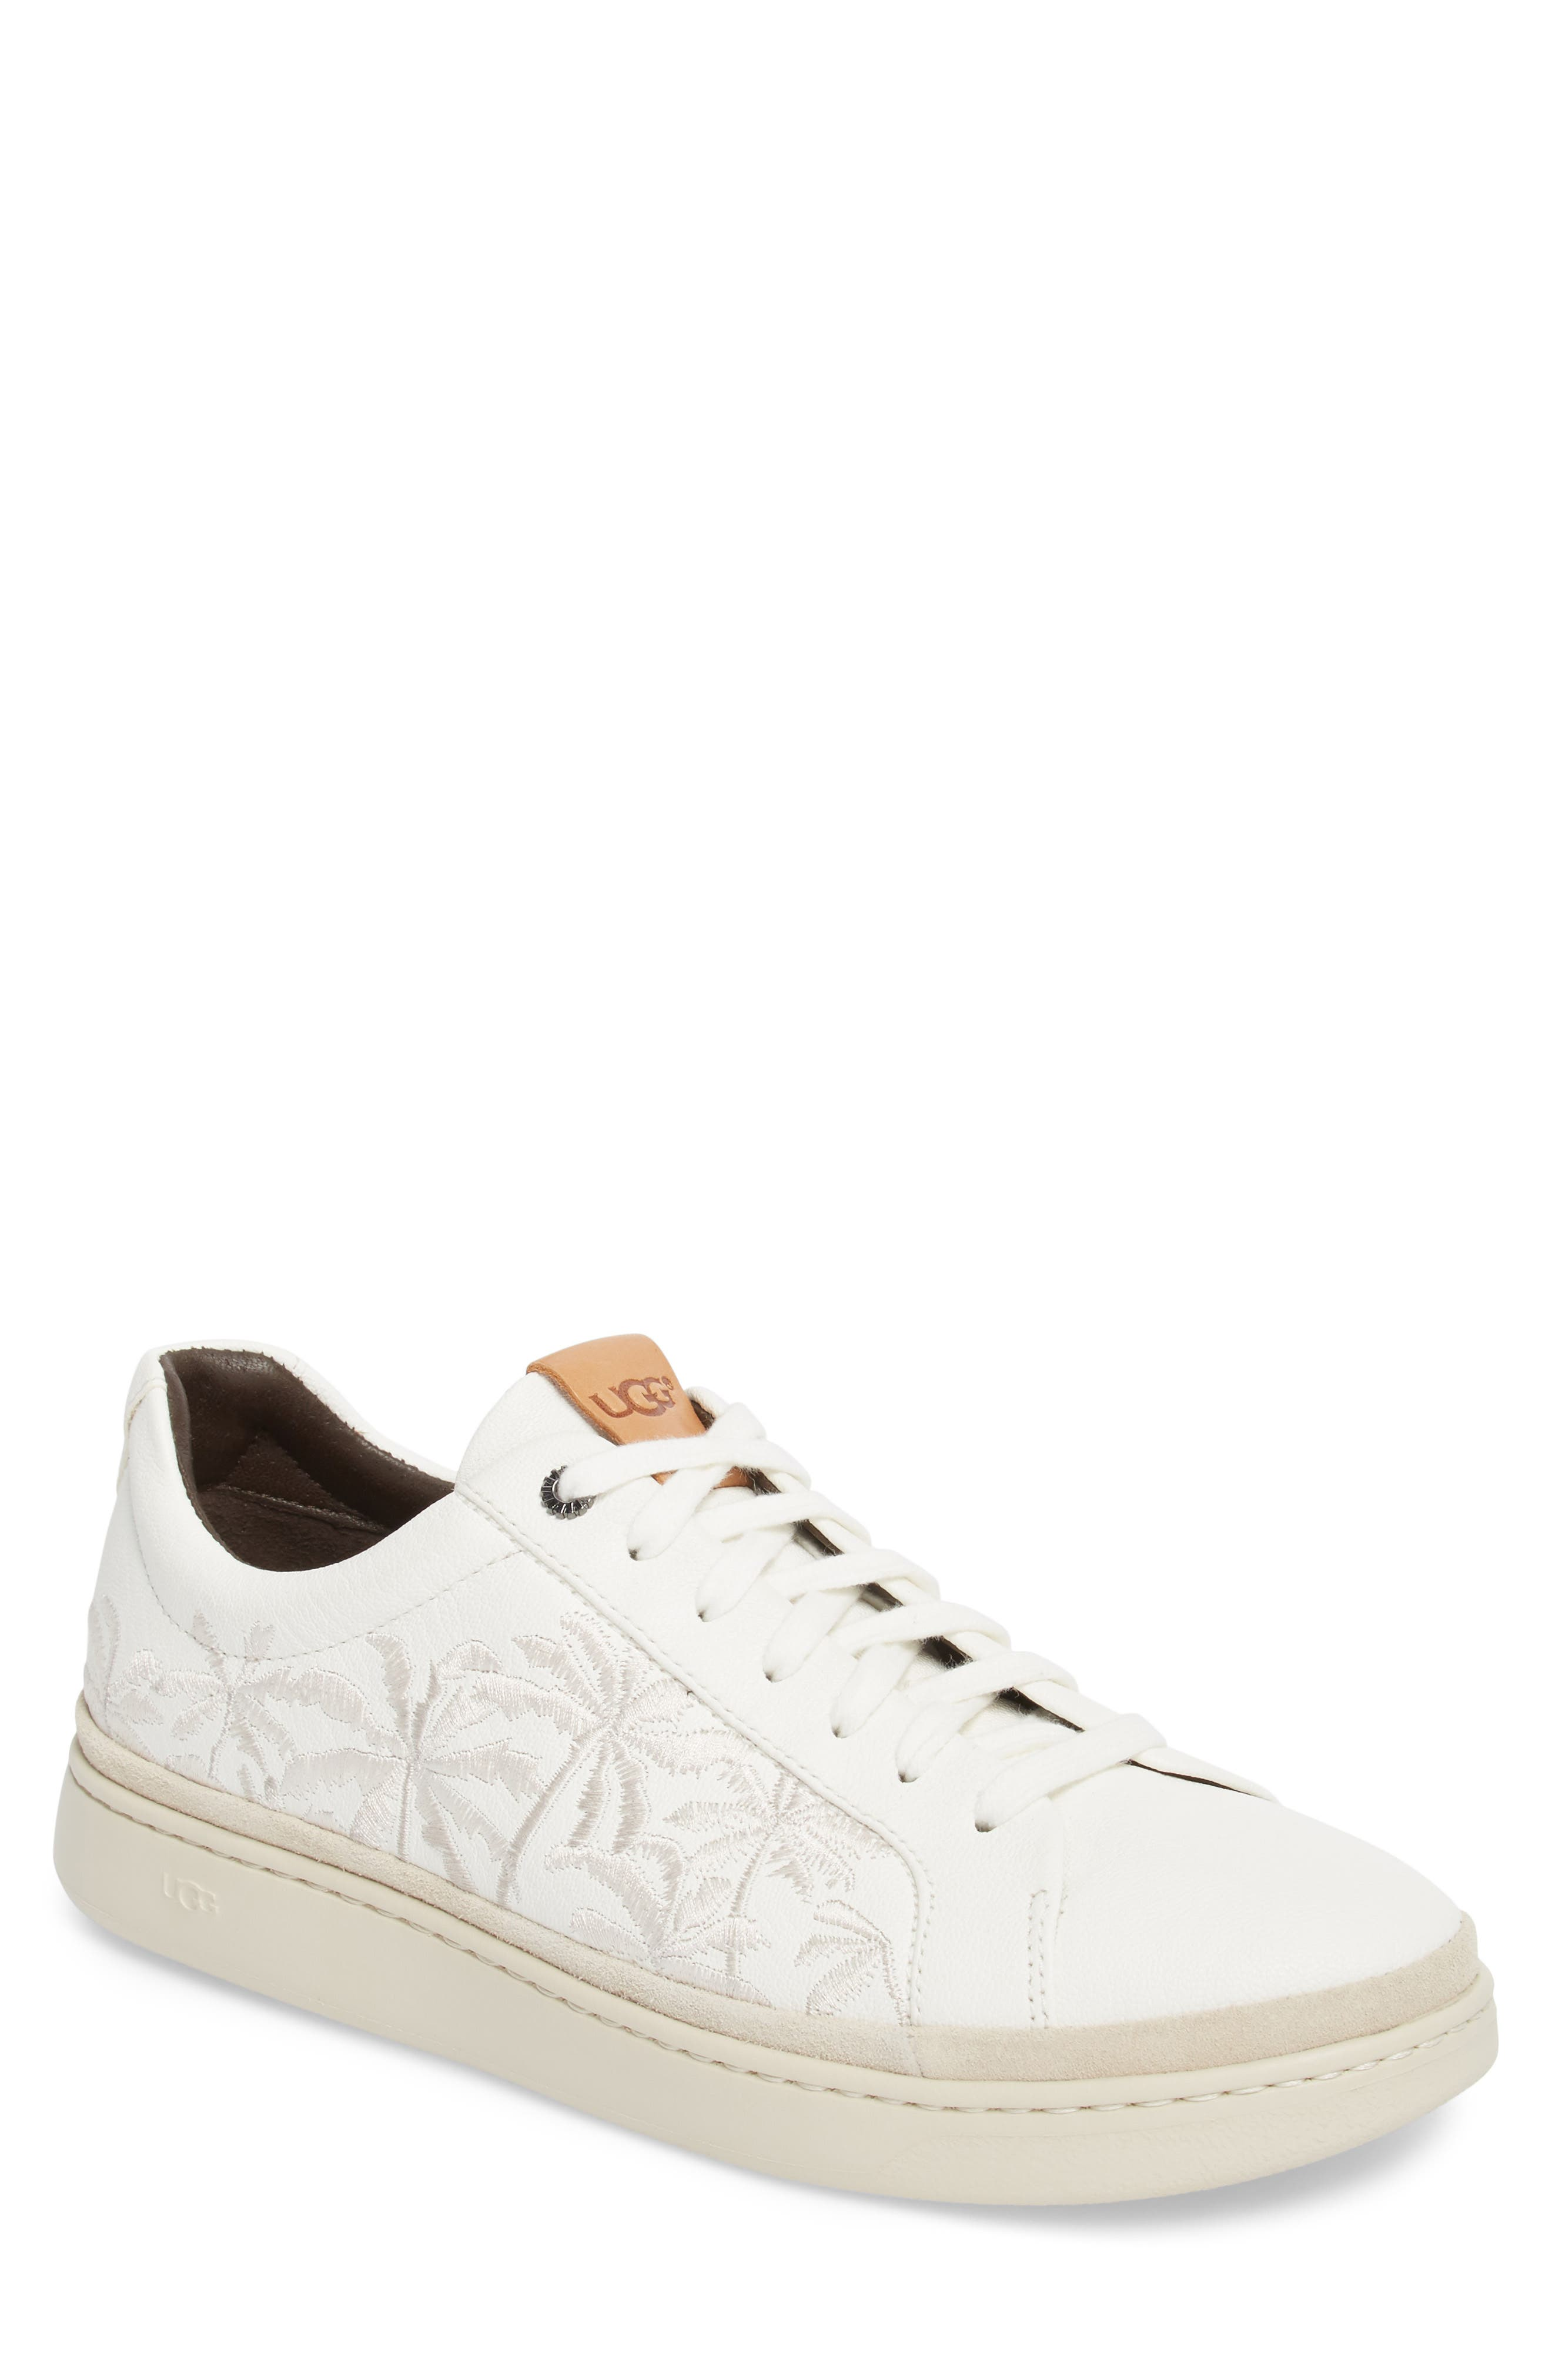 Palm Embroidered Sneaker,                             Main thumbnail 1, color,                             100